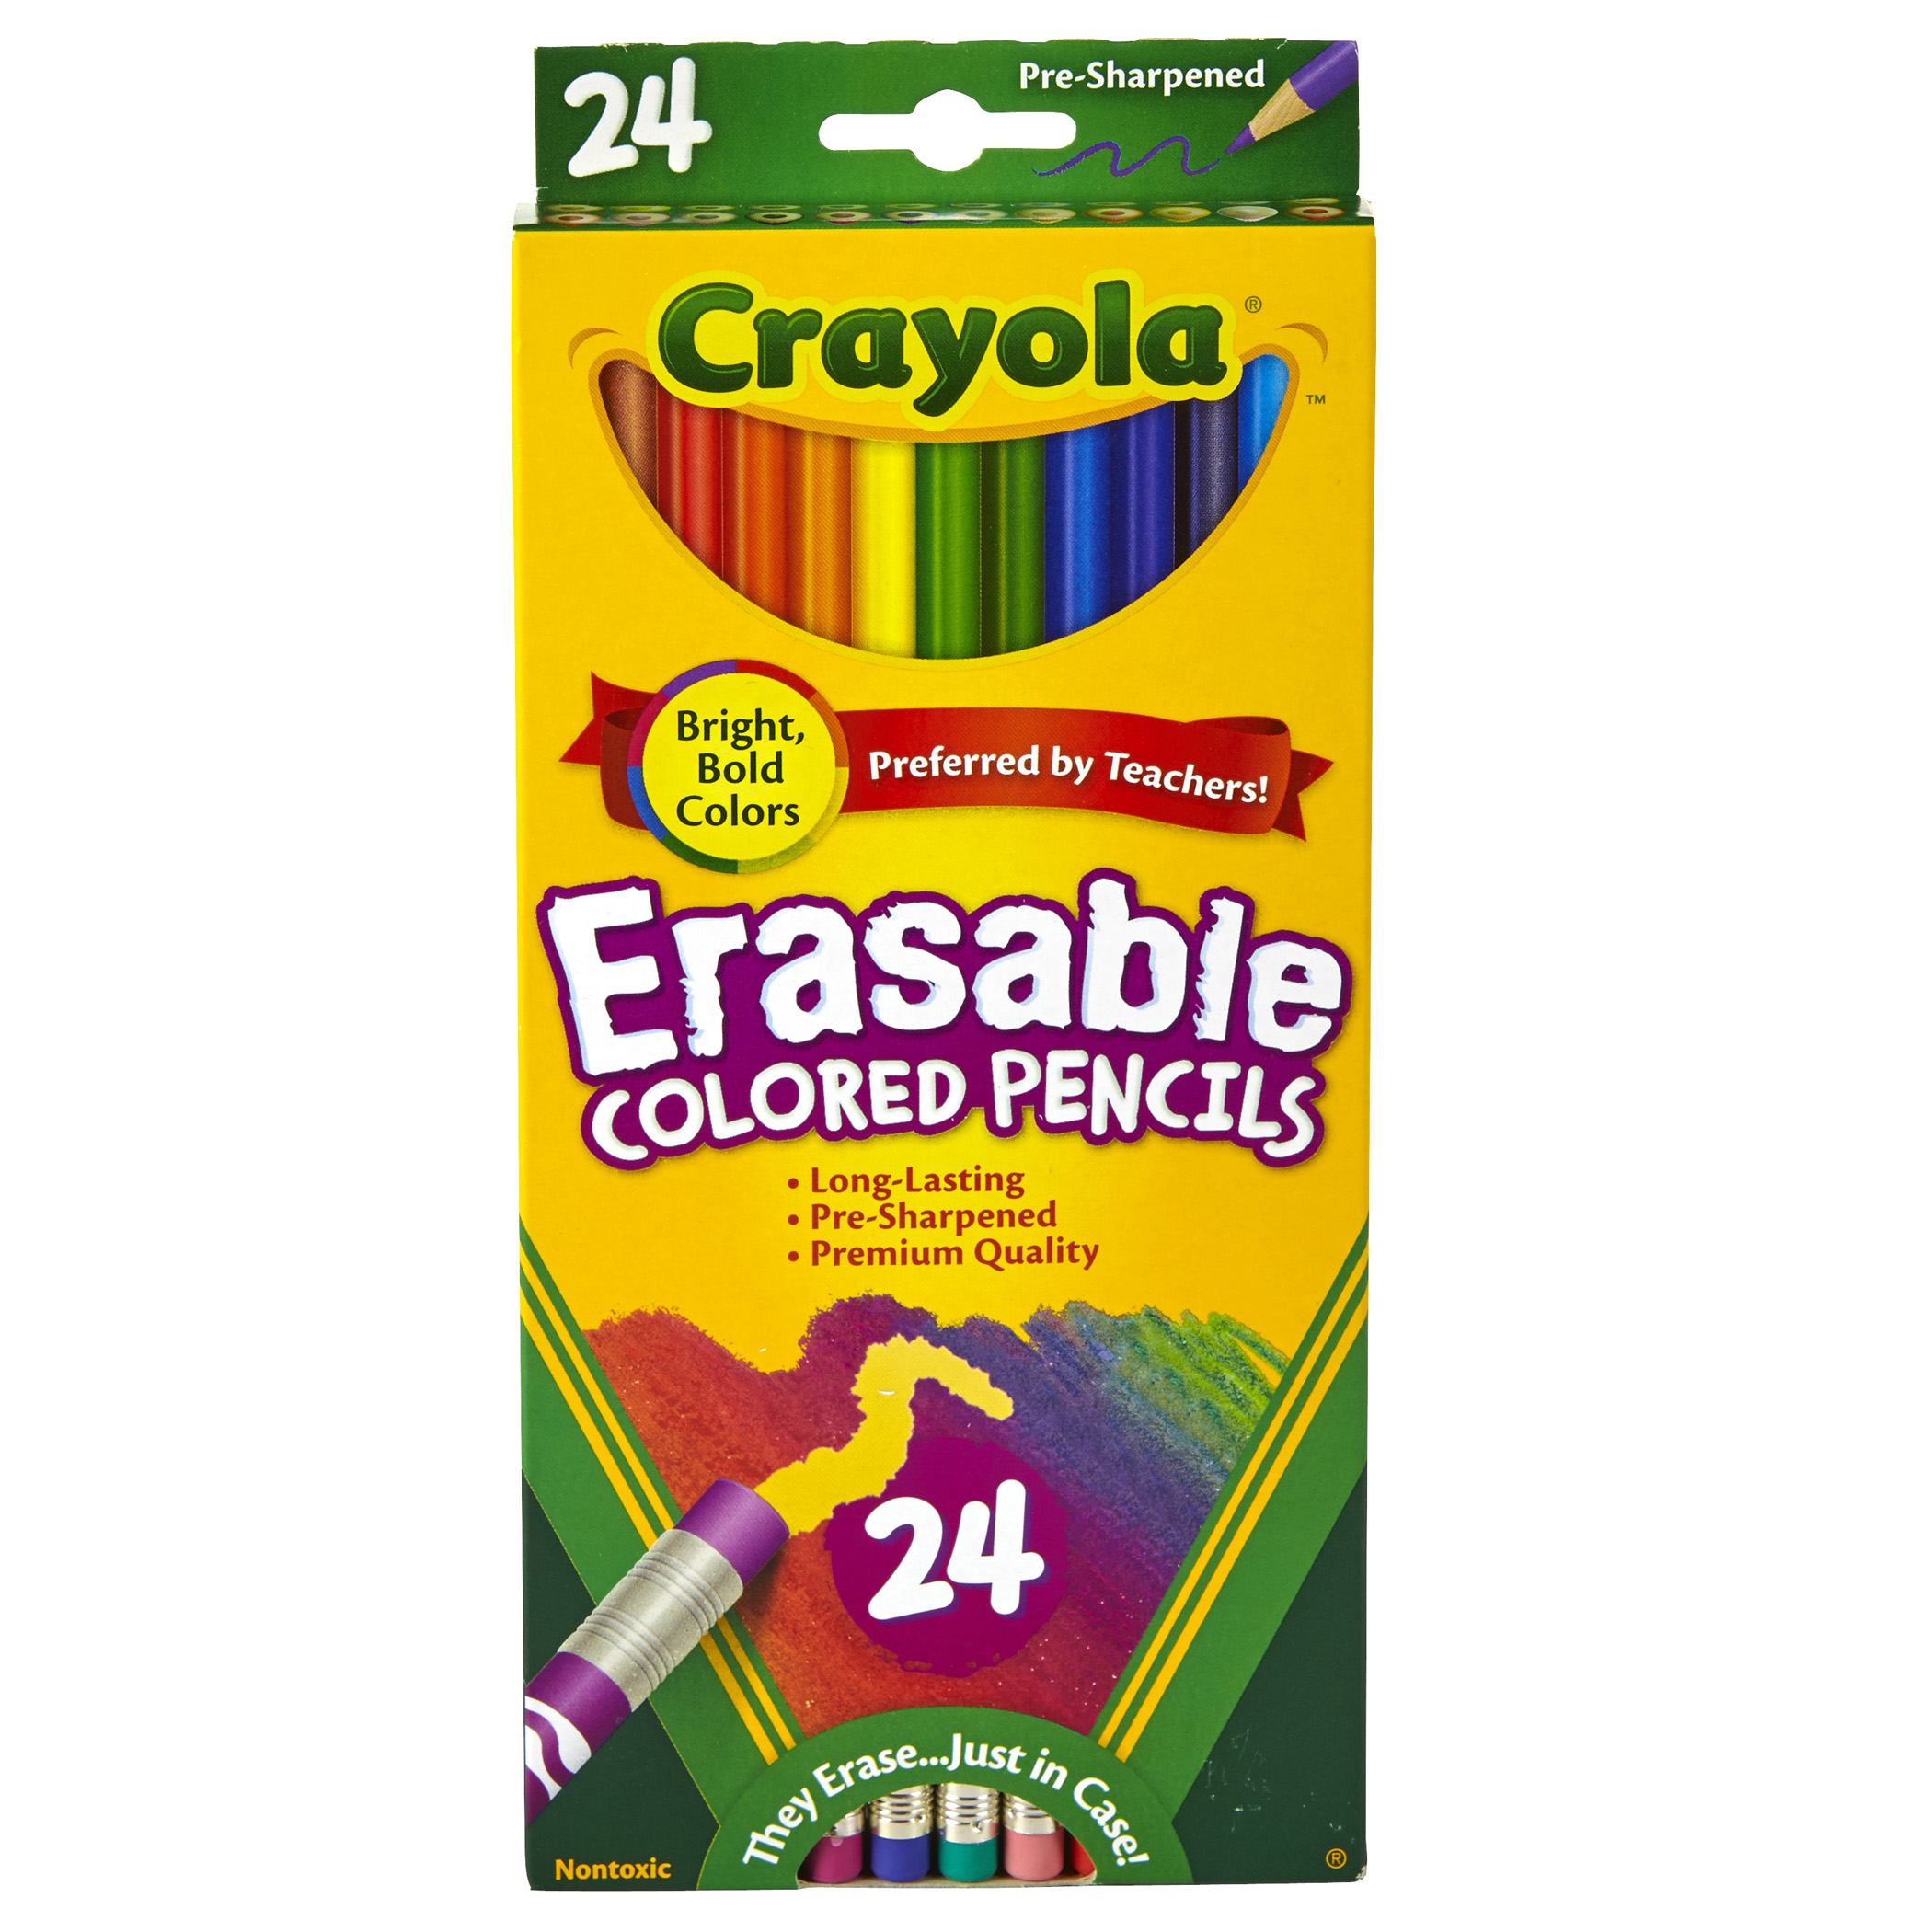 Crayola® Erasable Colored Pencils, 24 colors per box, Set of 3 boxes